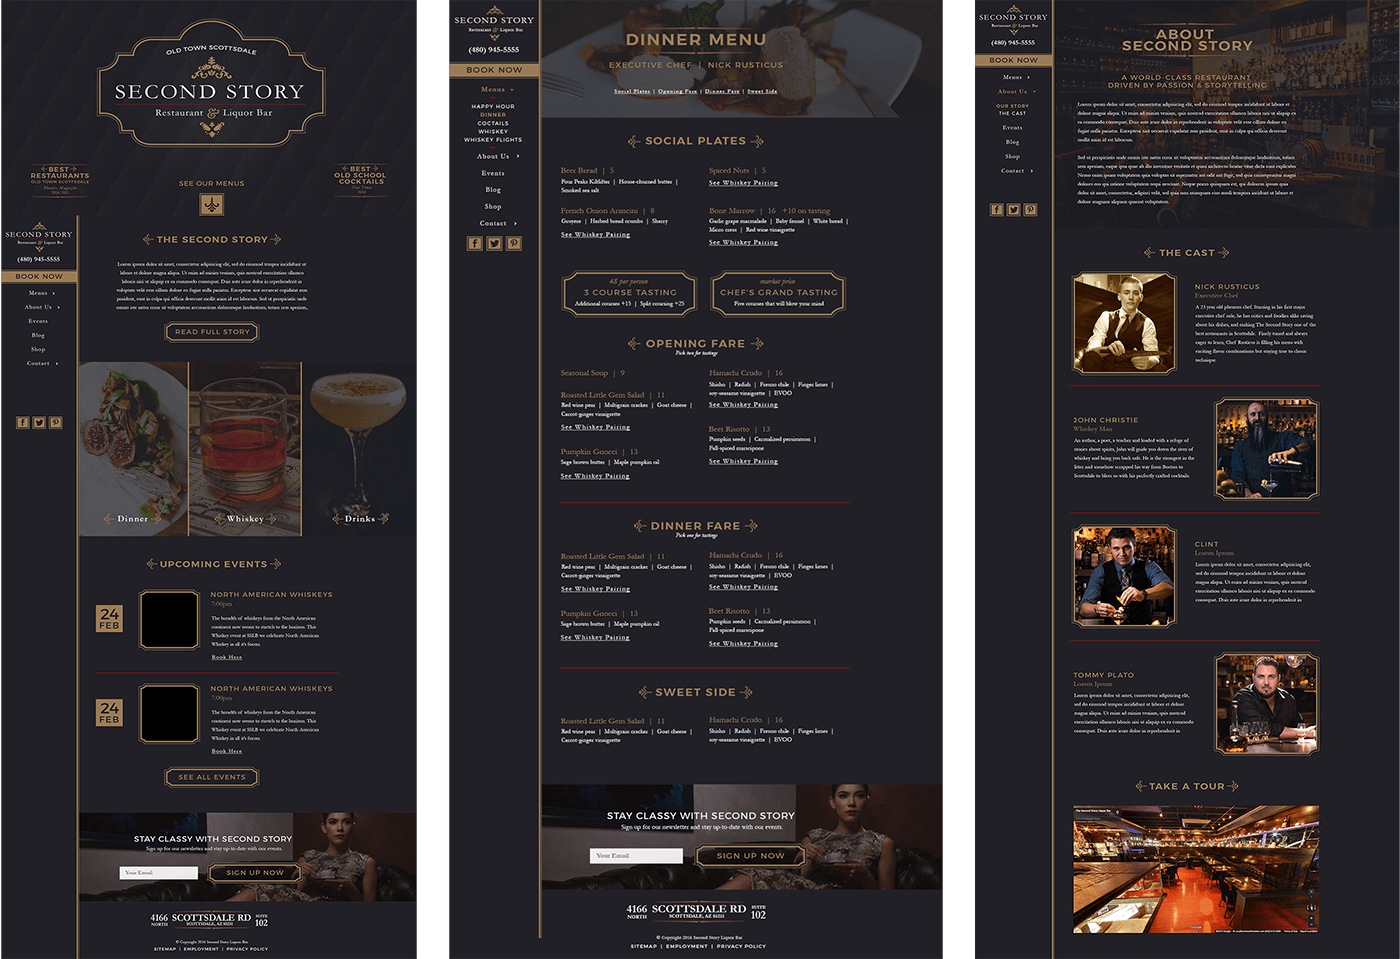 Second Story Restaurant Website pages